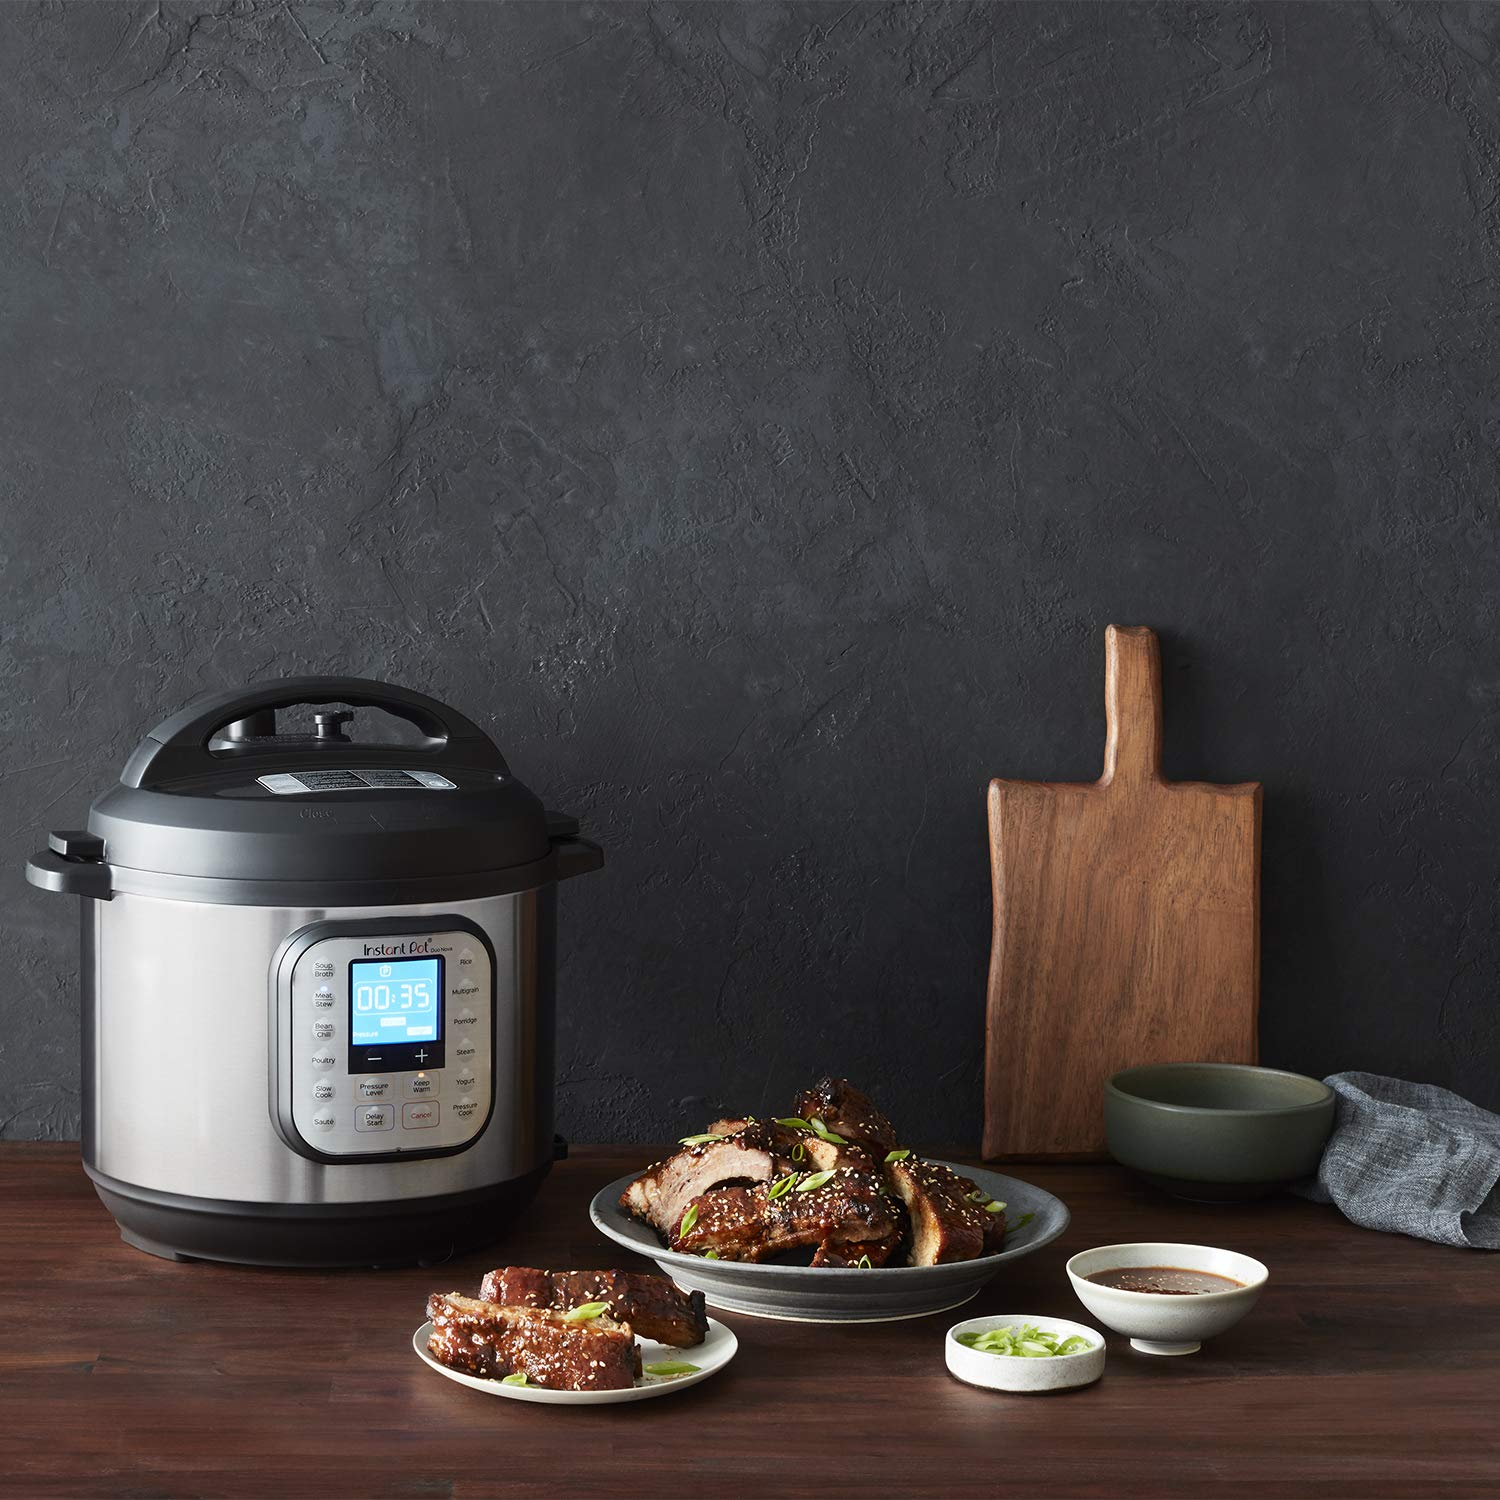 Surprise! Instant Pot Just Released a Brand-New Model